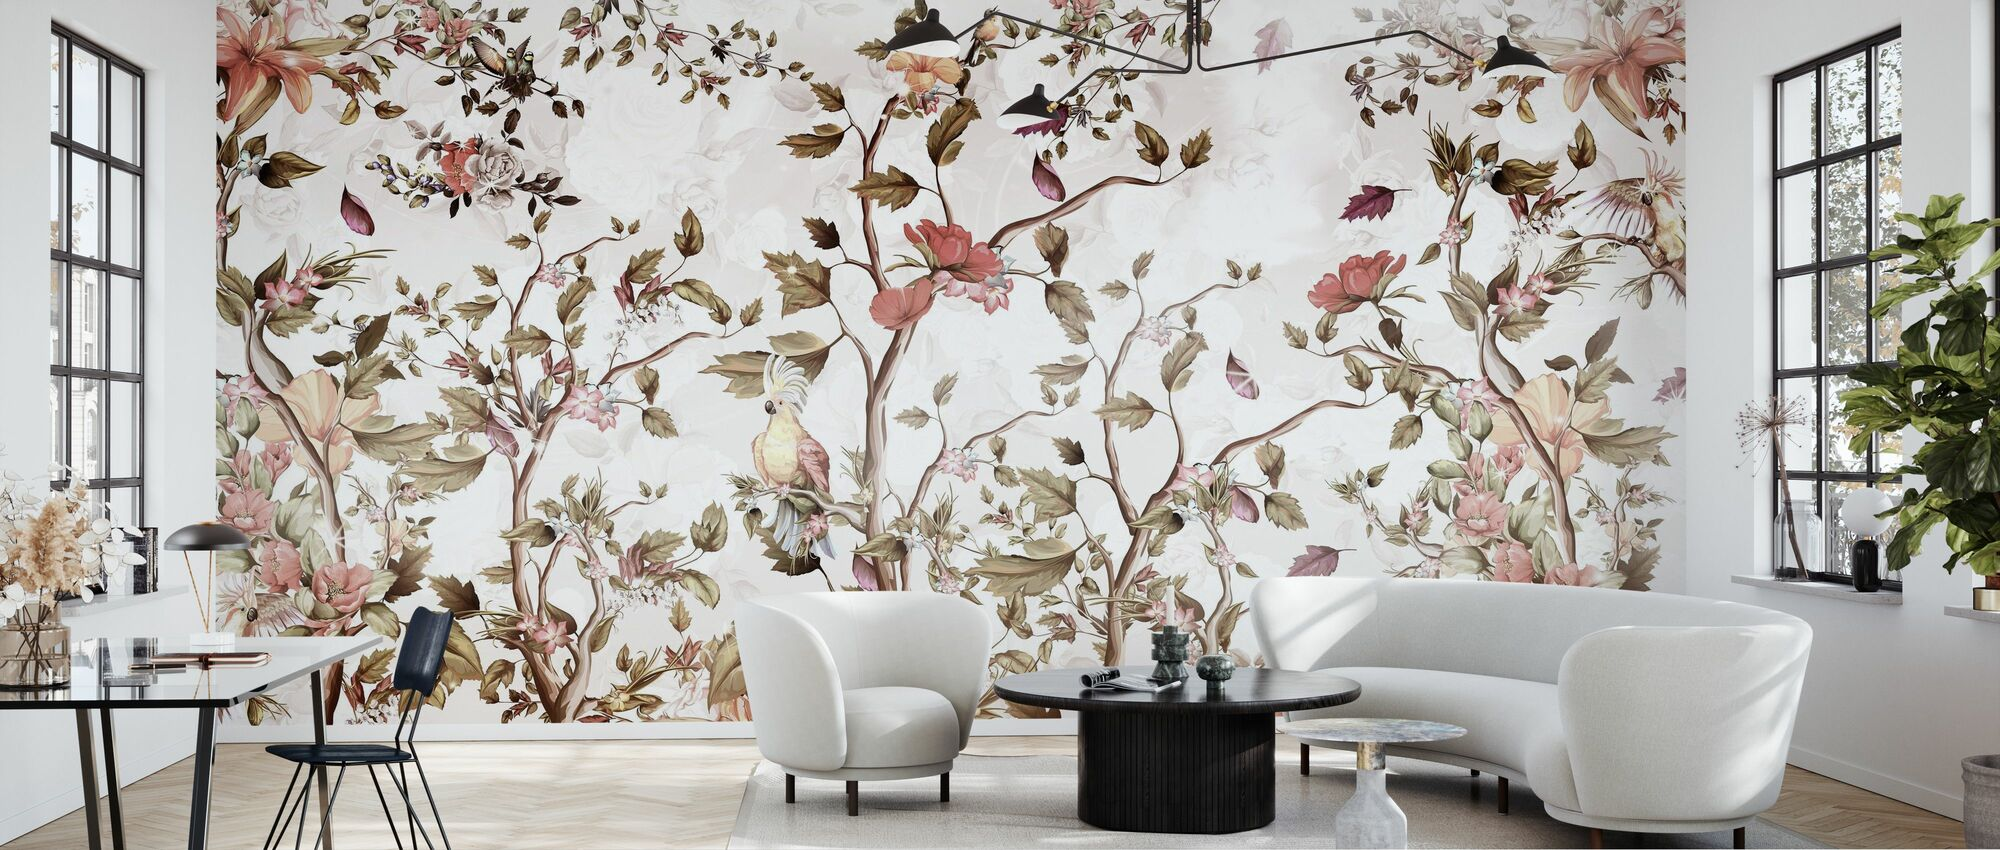 Parrot in Blossom - Wallpaper - Living Room